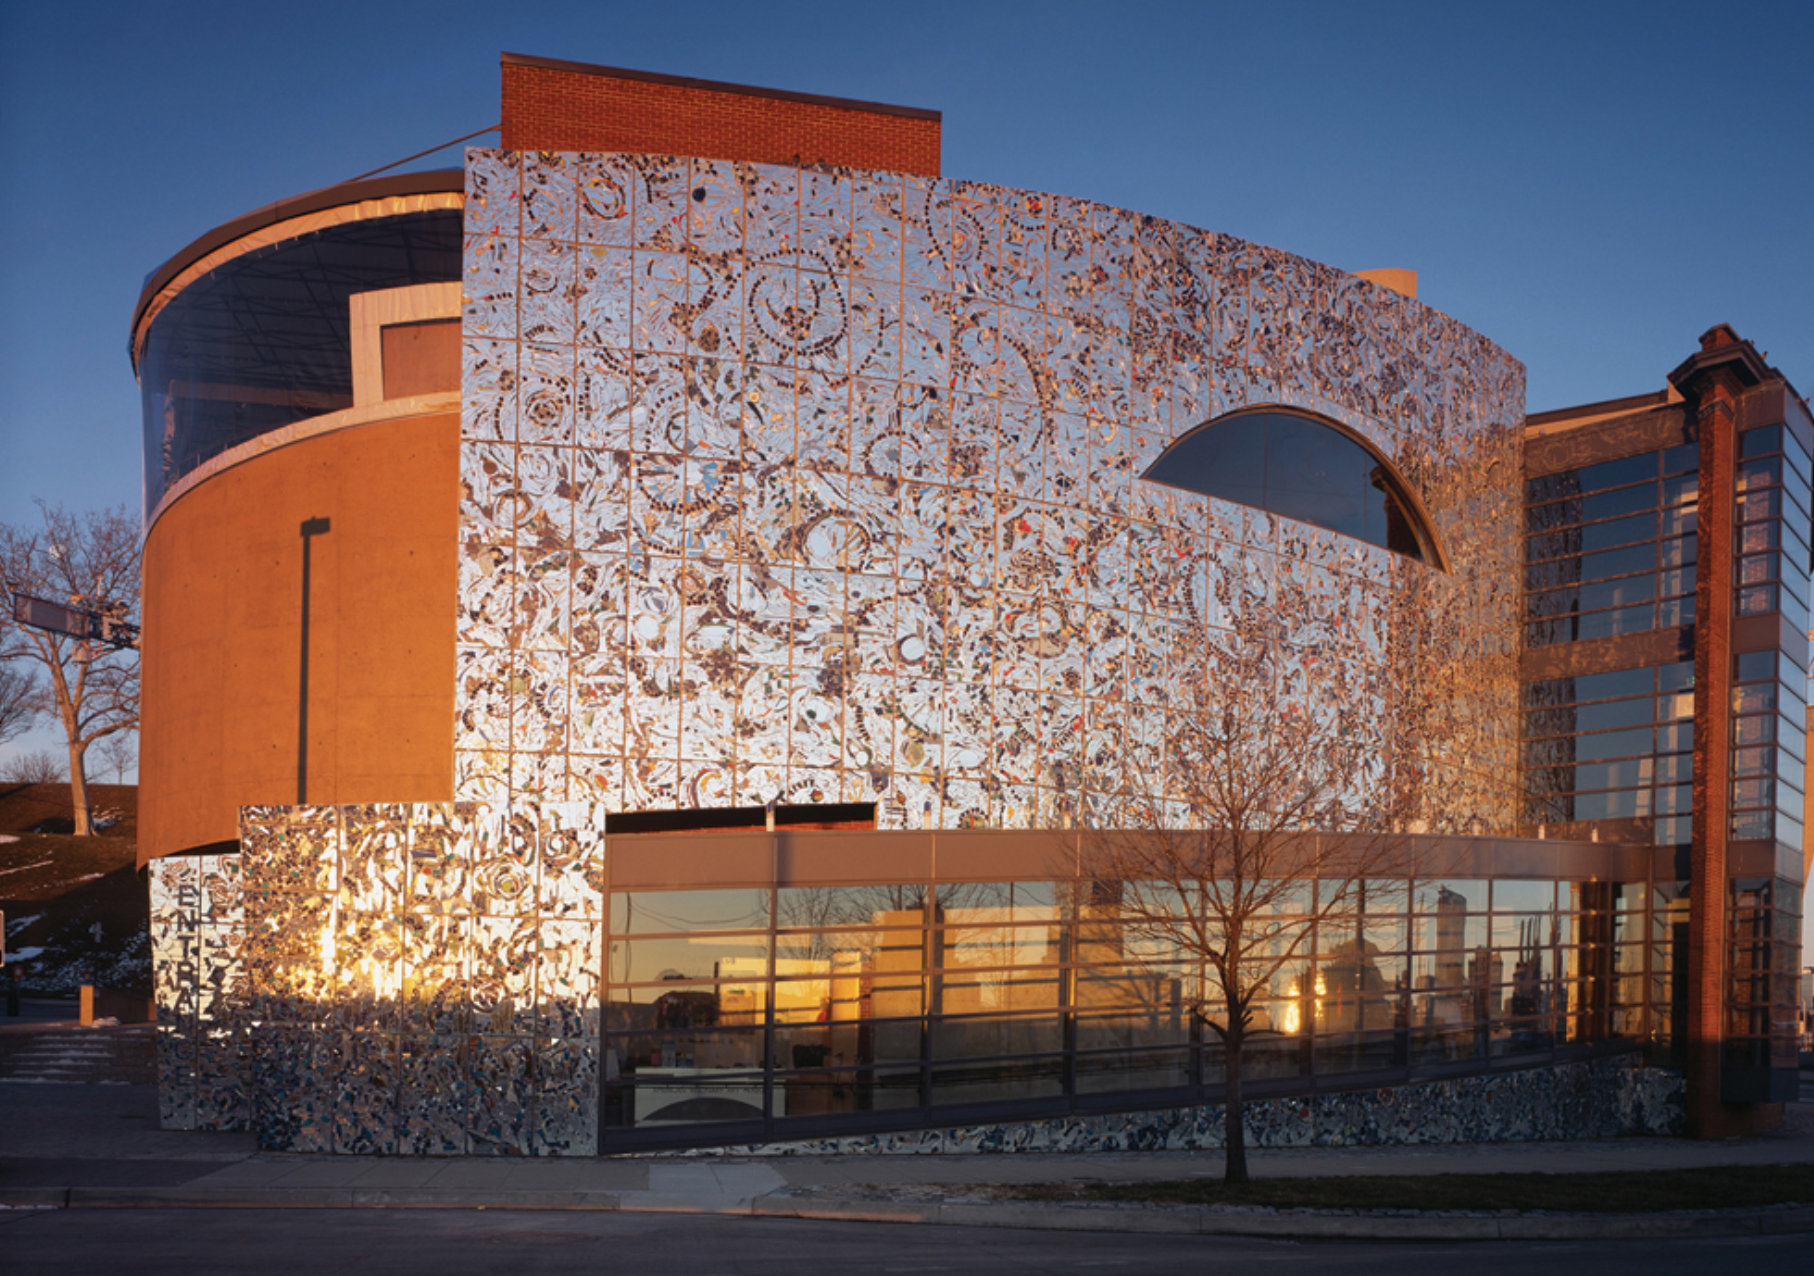 Exterior of The American Visionary Art Museum